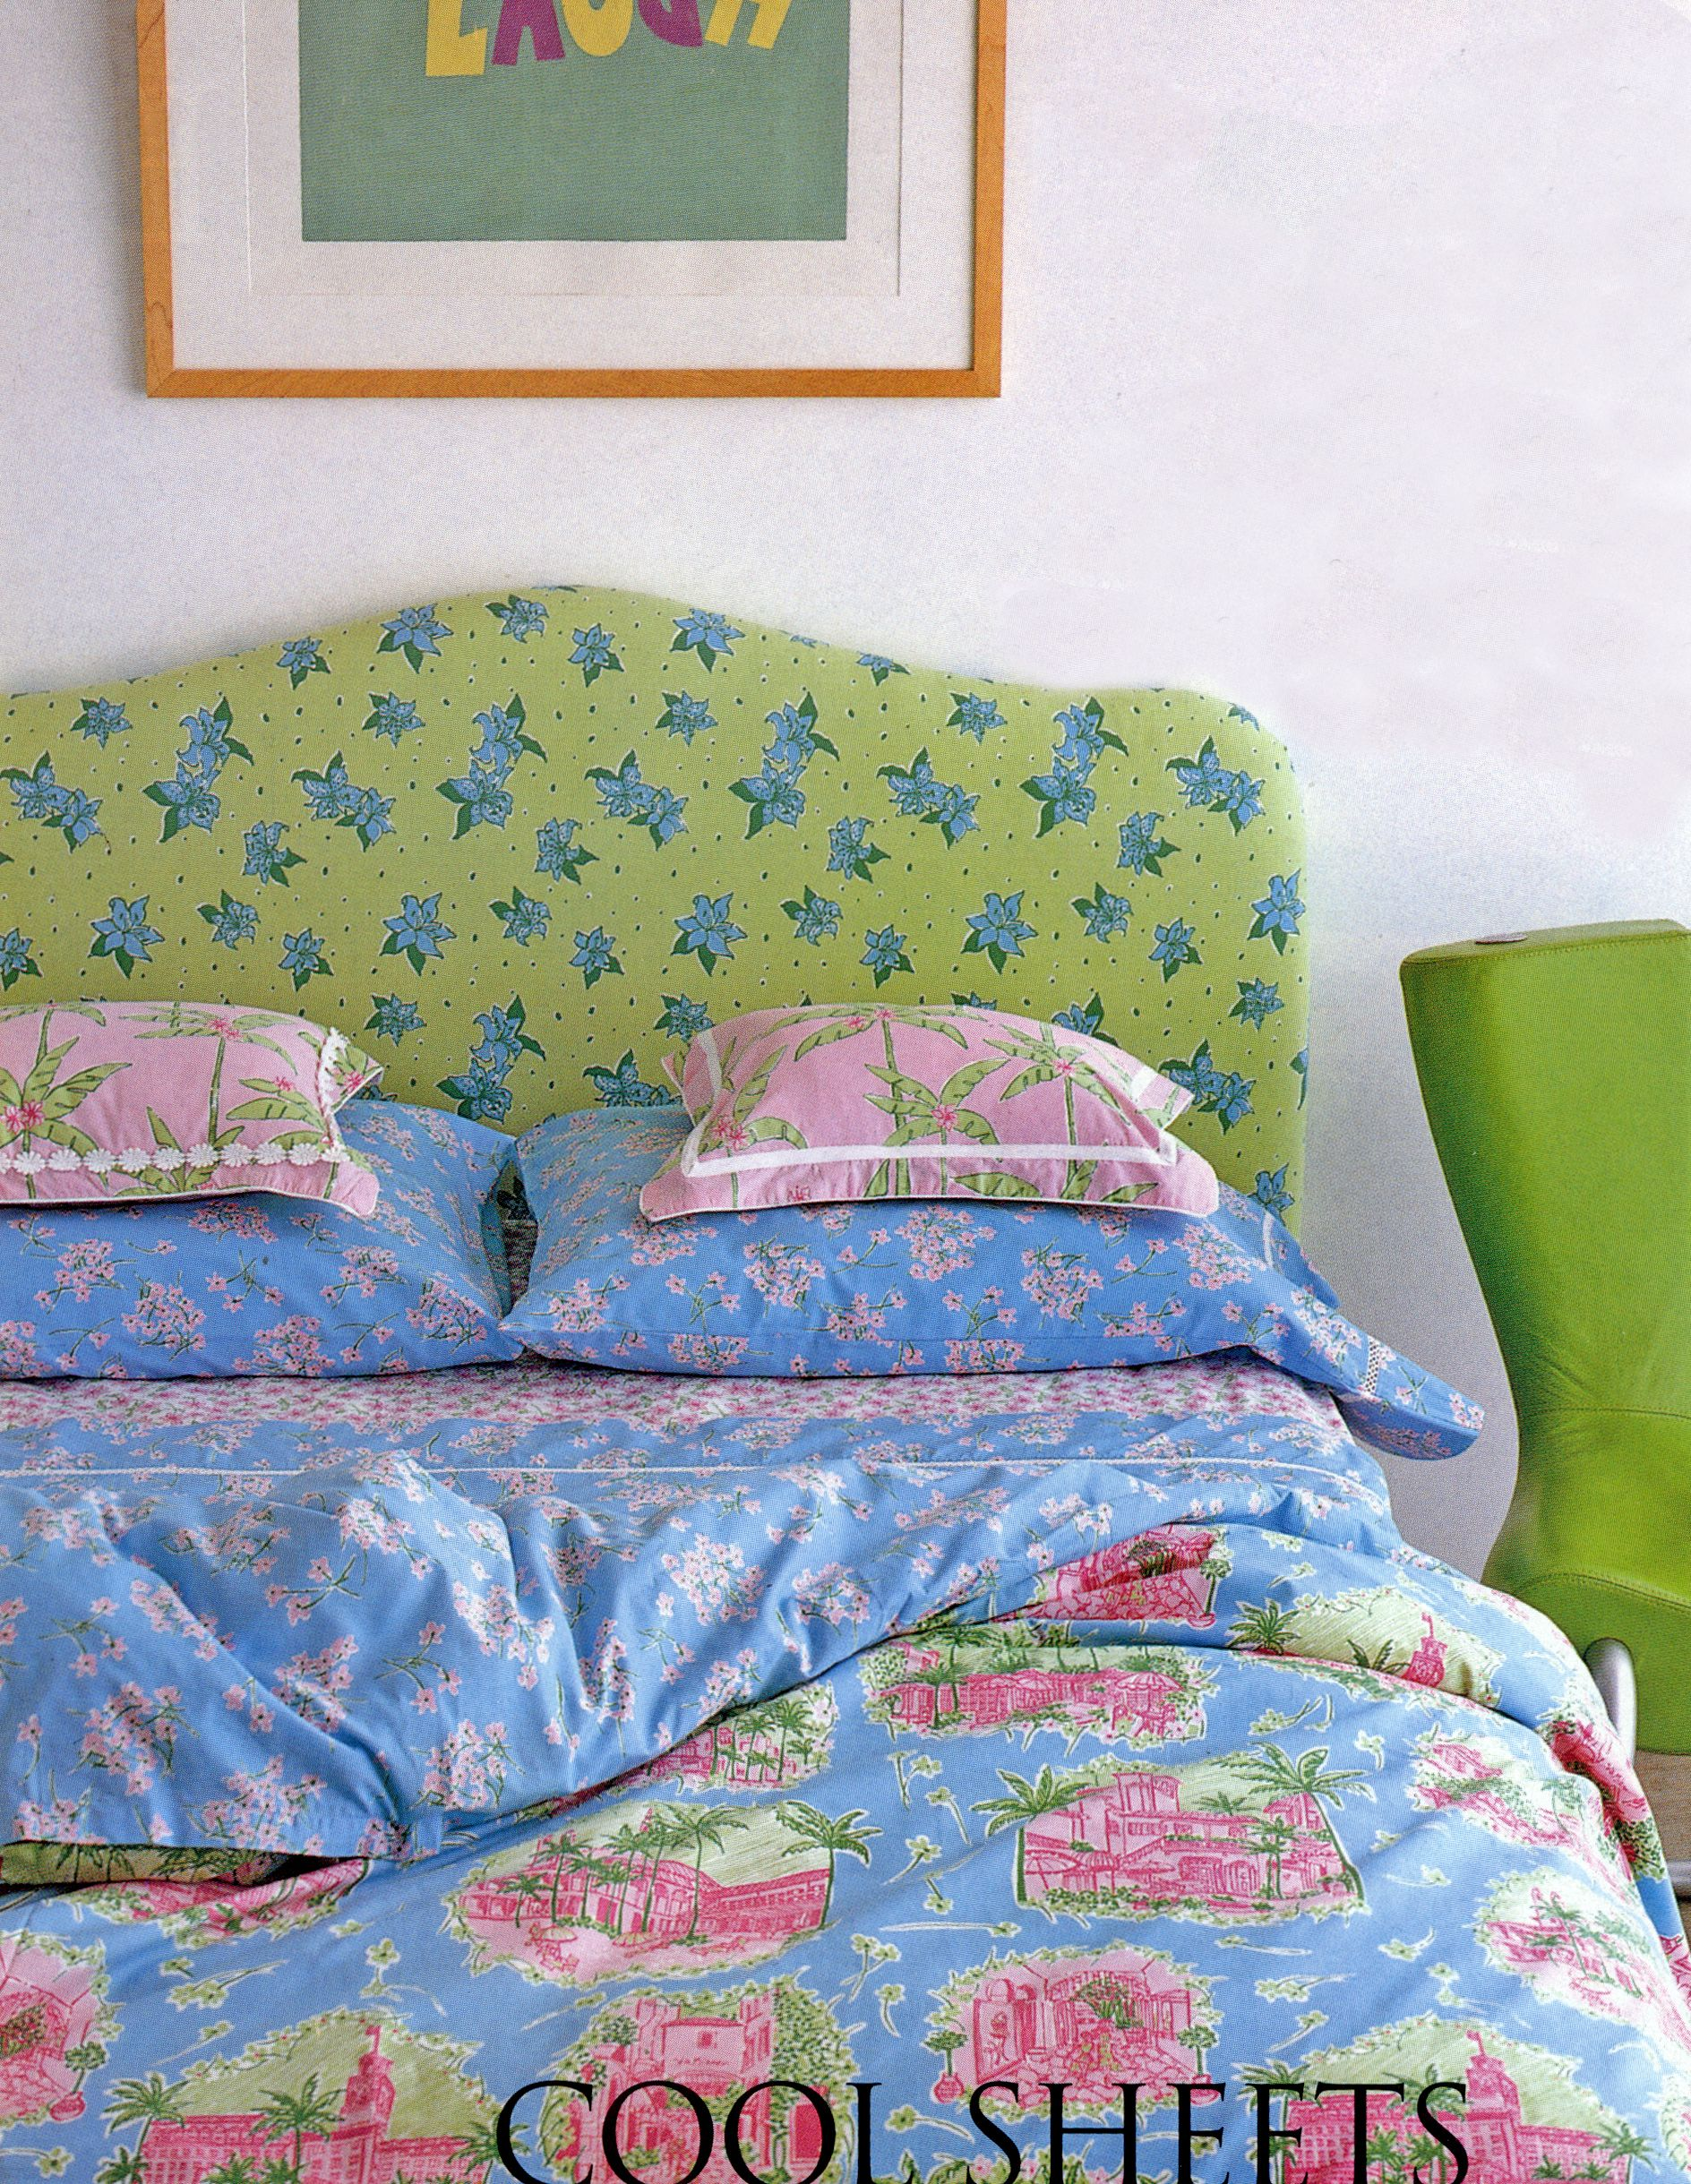 Lilly Pulitzer's bedding by Dan River. Palm Beach Toile